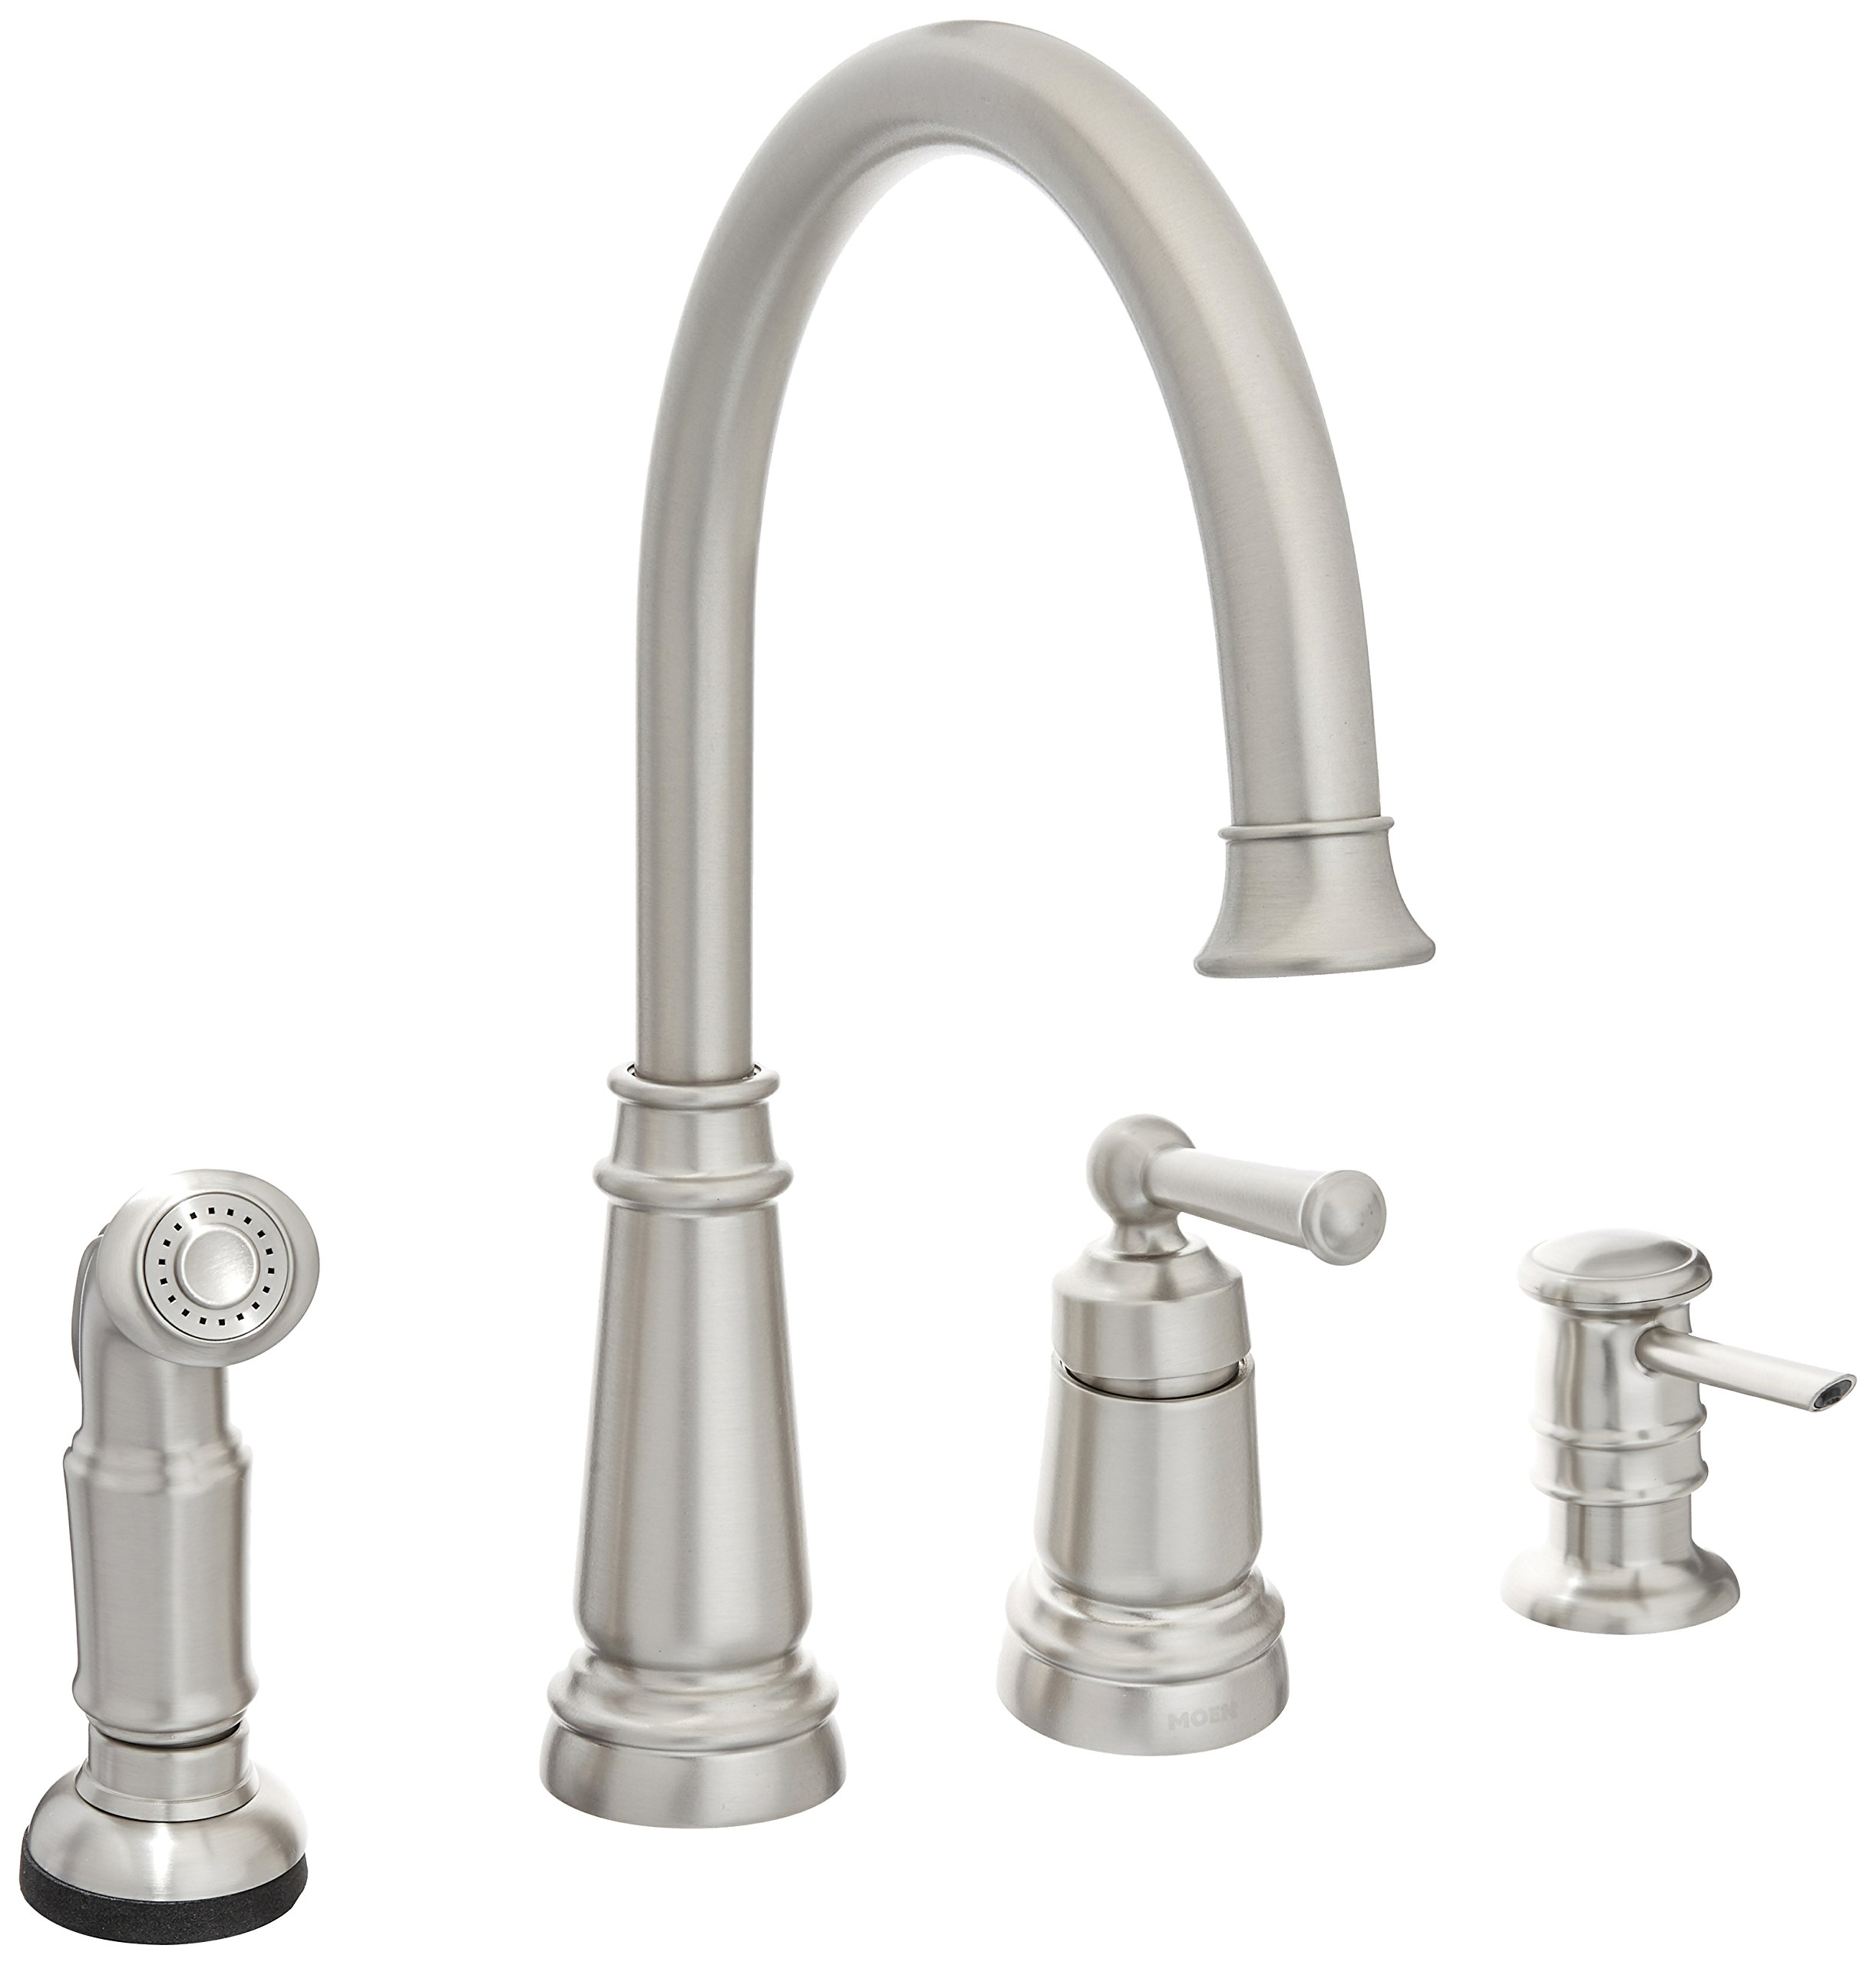 Moen 87042srs one handle high arc kitchen faucet spot resist stainless